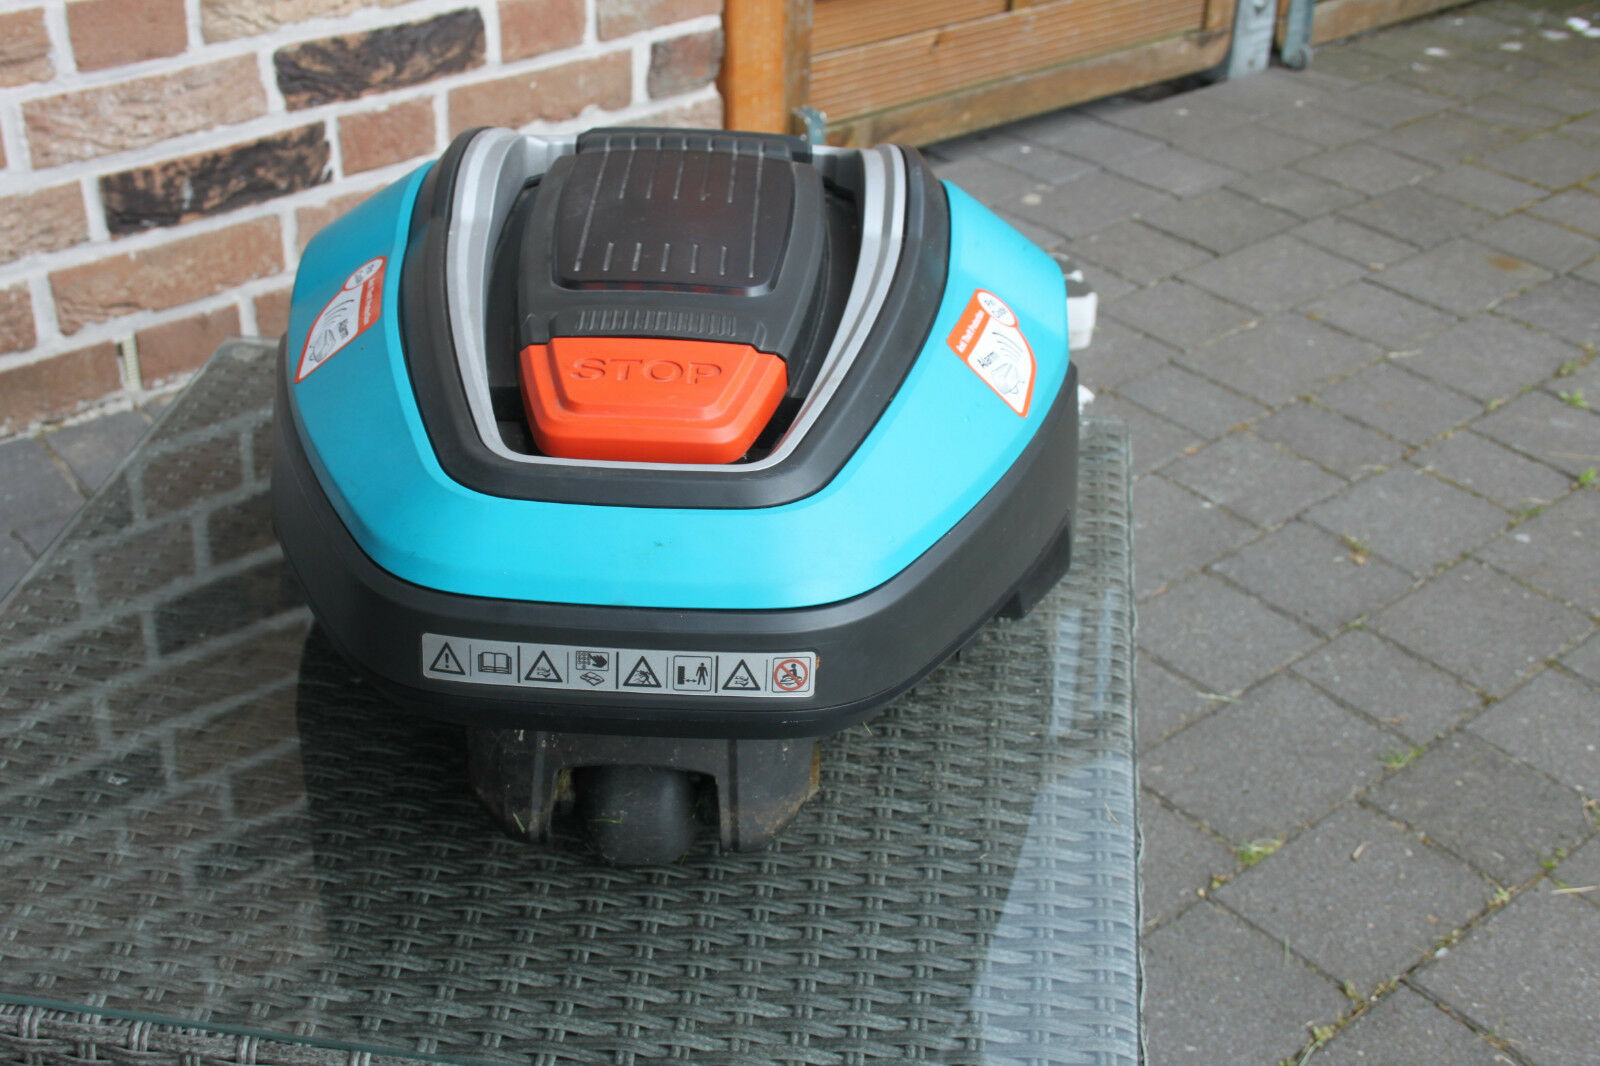 gardena automower r40 li rasenroboter m hroboter akku rasenm her top eur 800 00 picclick de. Black Bedroom Furniture Sets. Home Design Ideas